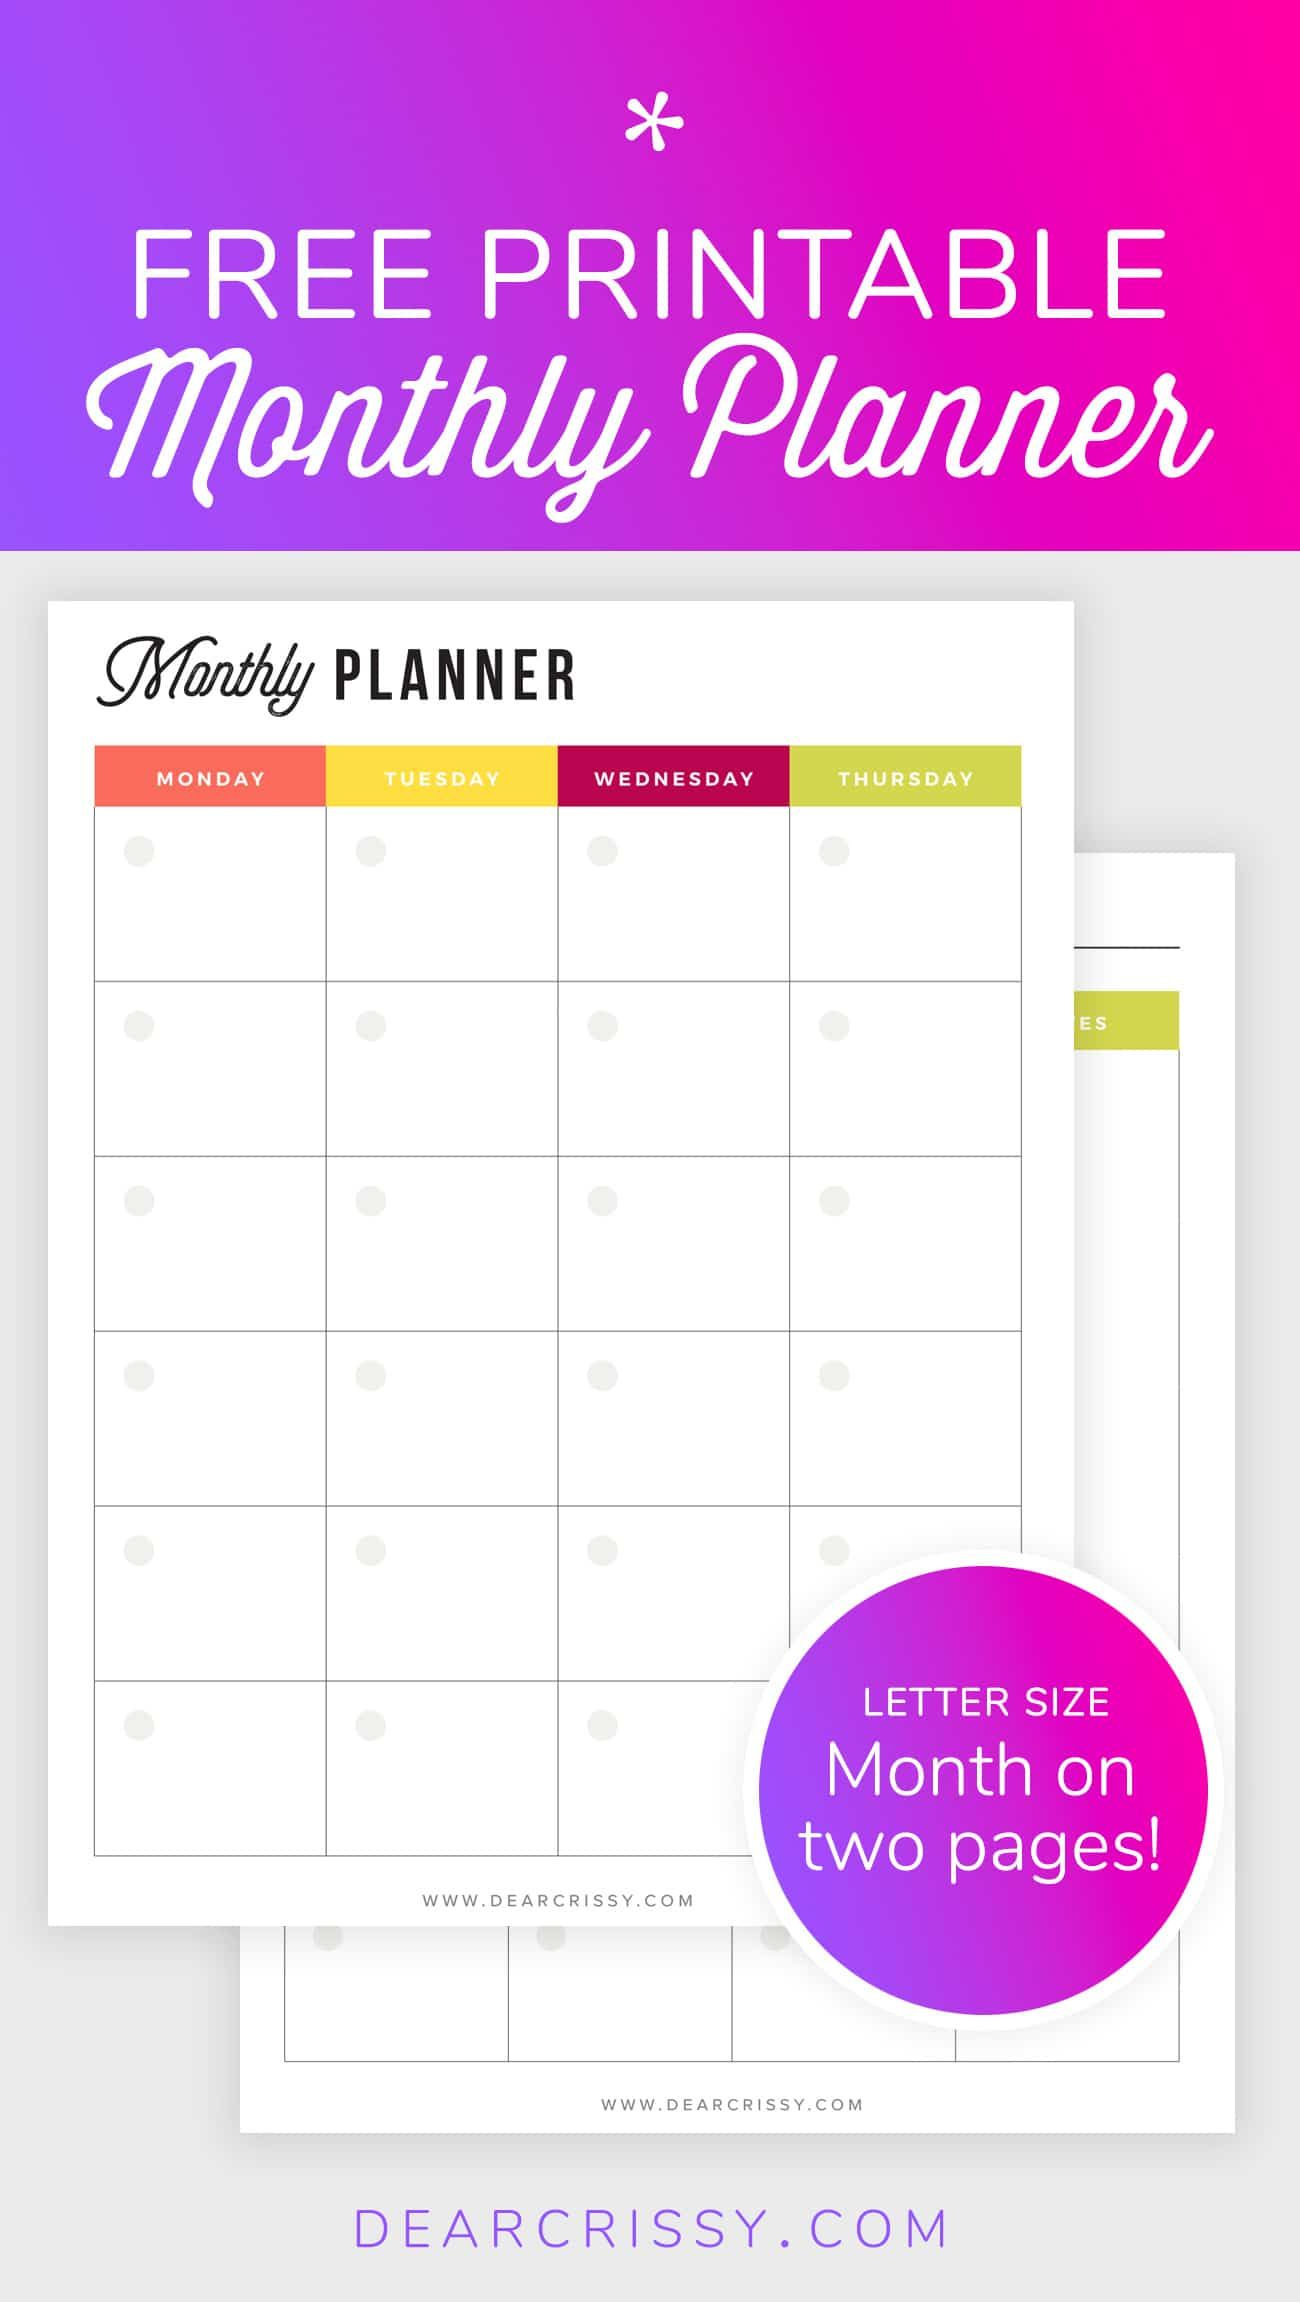 Free Printable Monthly Planner - Month-On-2-Pages Planner - Mo2P - Free Printable Monthly Planner